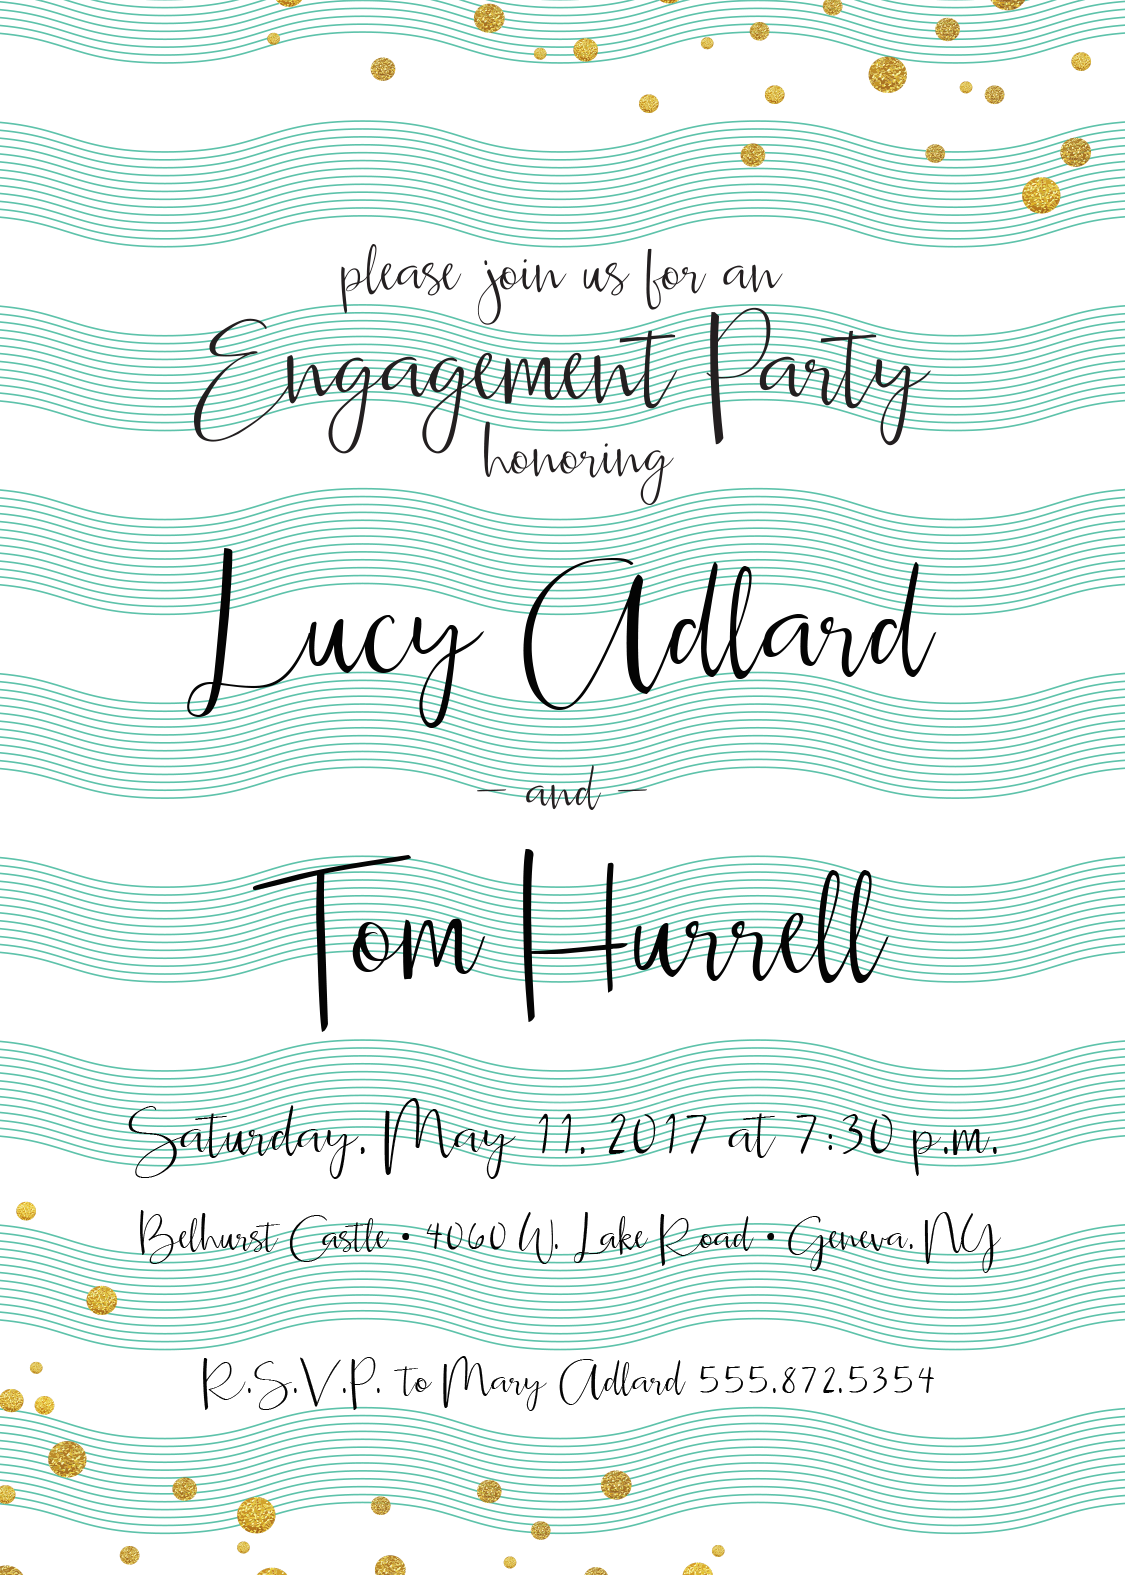 Engagement Party Invitation | CatPrint Design #1019